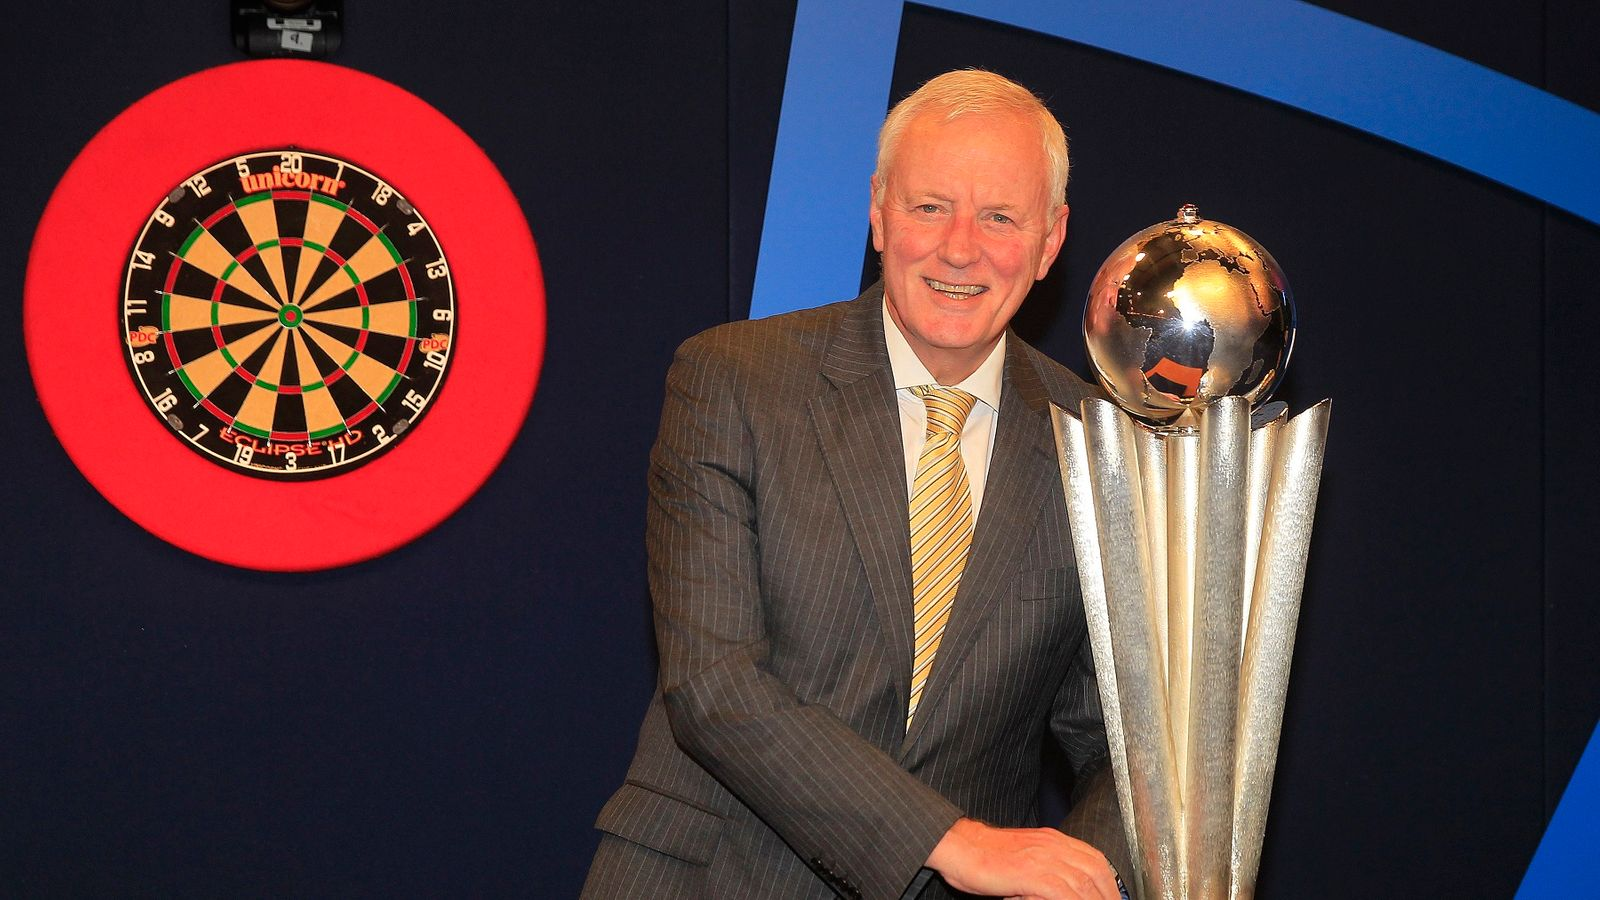 PDC Chairman Barry Hearn test positive for COVID-19